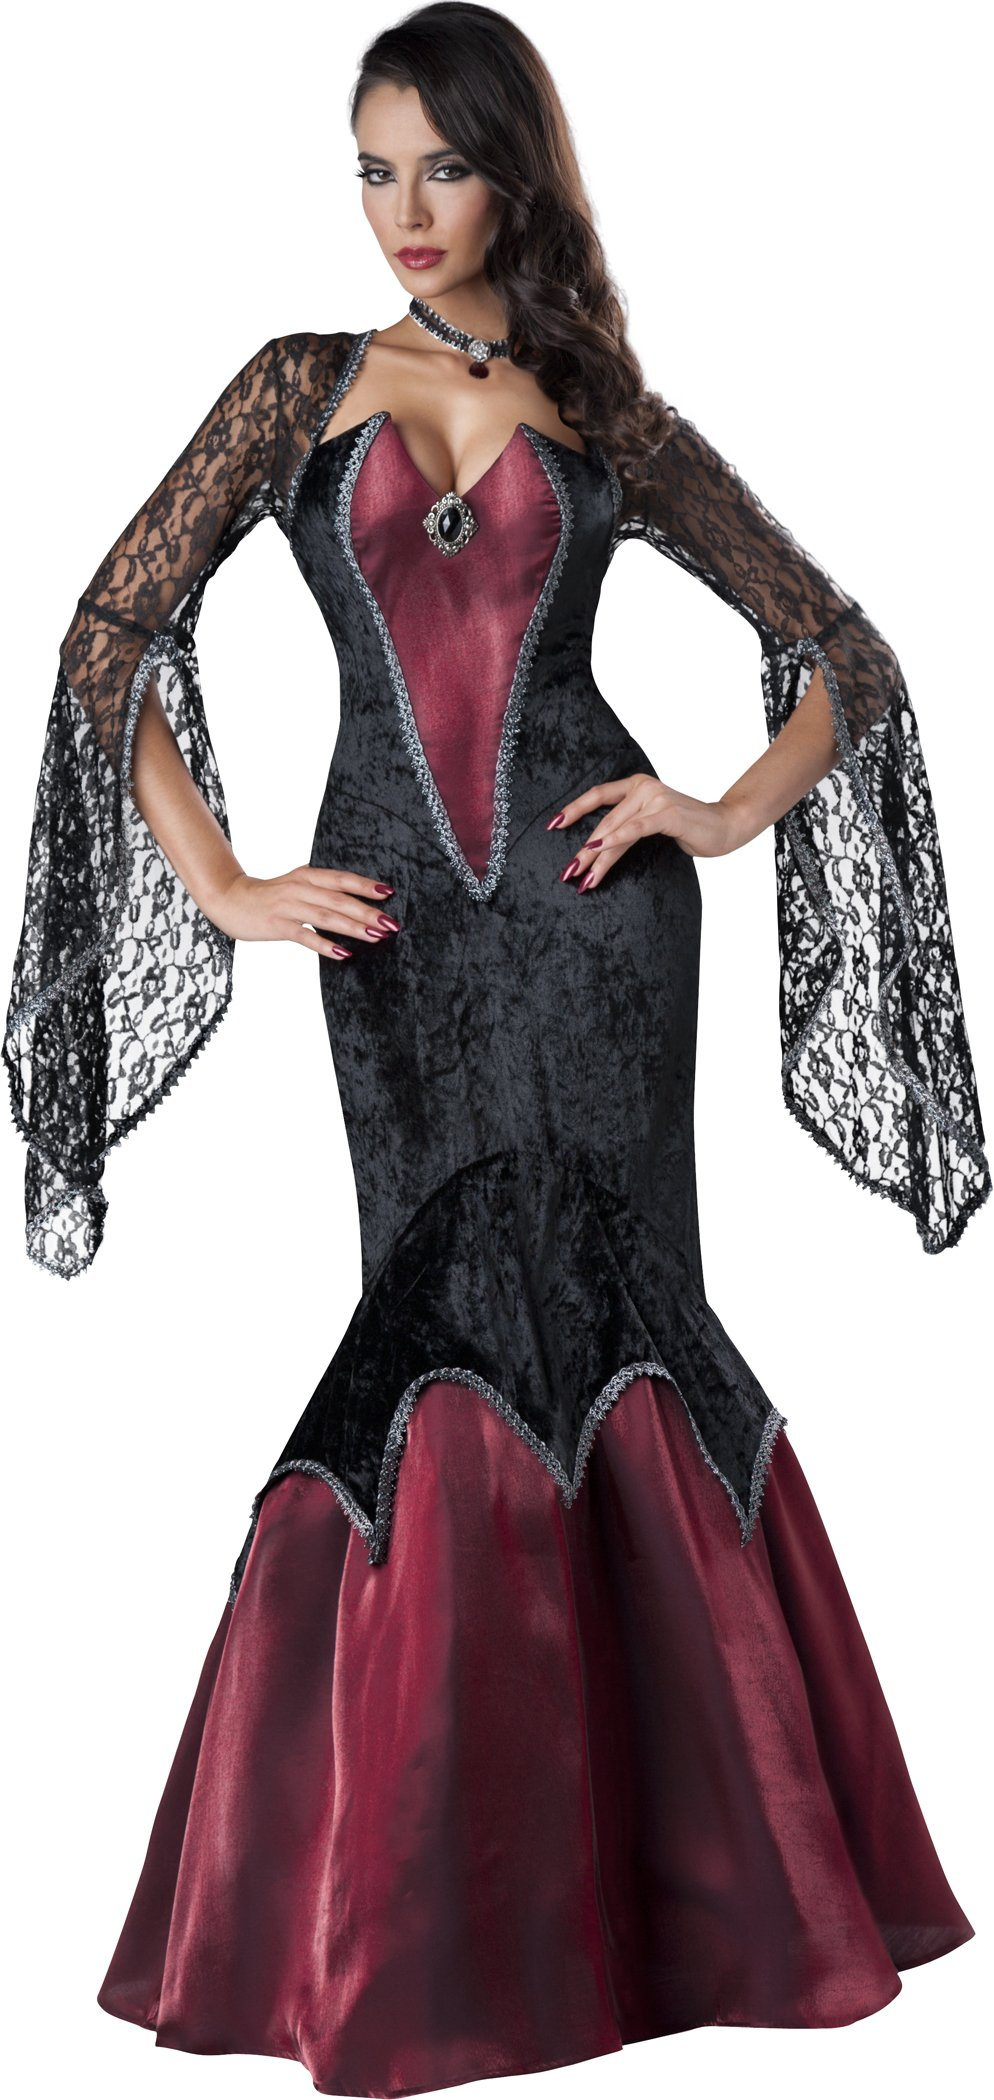 InCharacter Costumes Women's Piercing Beauty Vampiress Costume, Black/Red, Small by Fun World